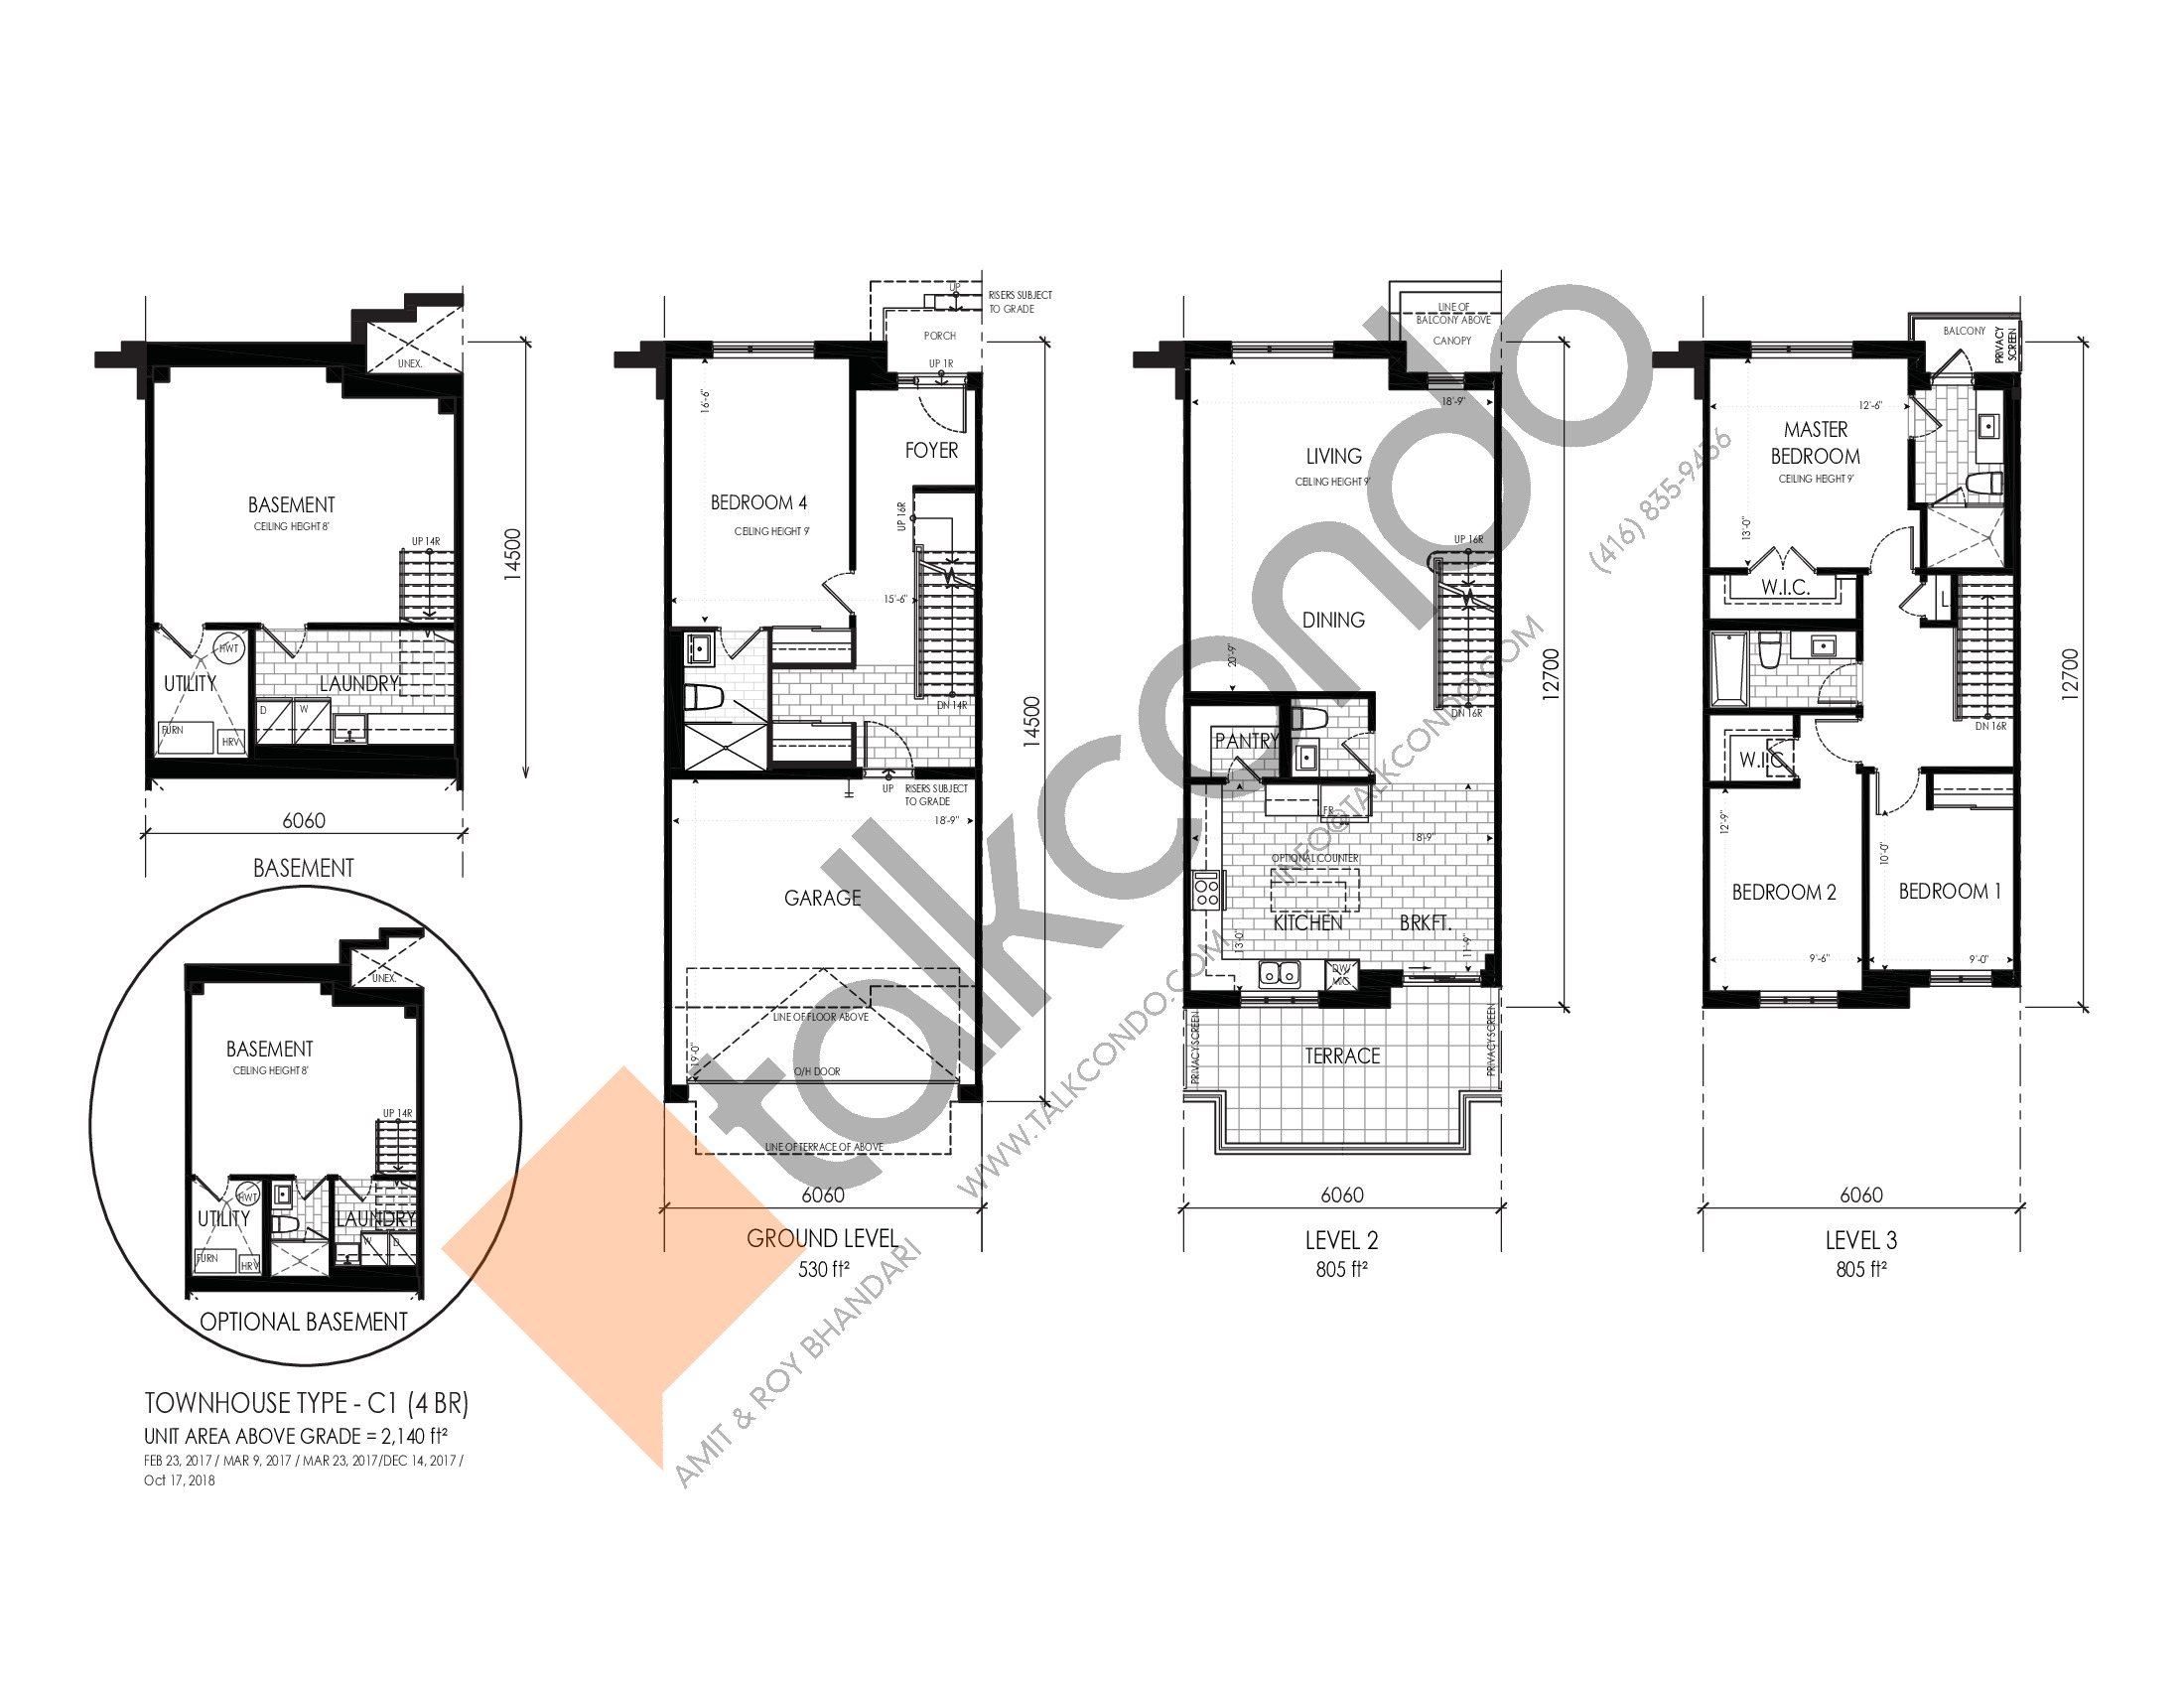 C1 (4BR) Floor Plan at Pavilia Park Towns - 2140 sq.ft